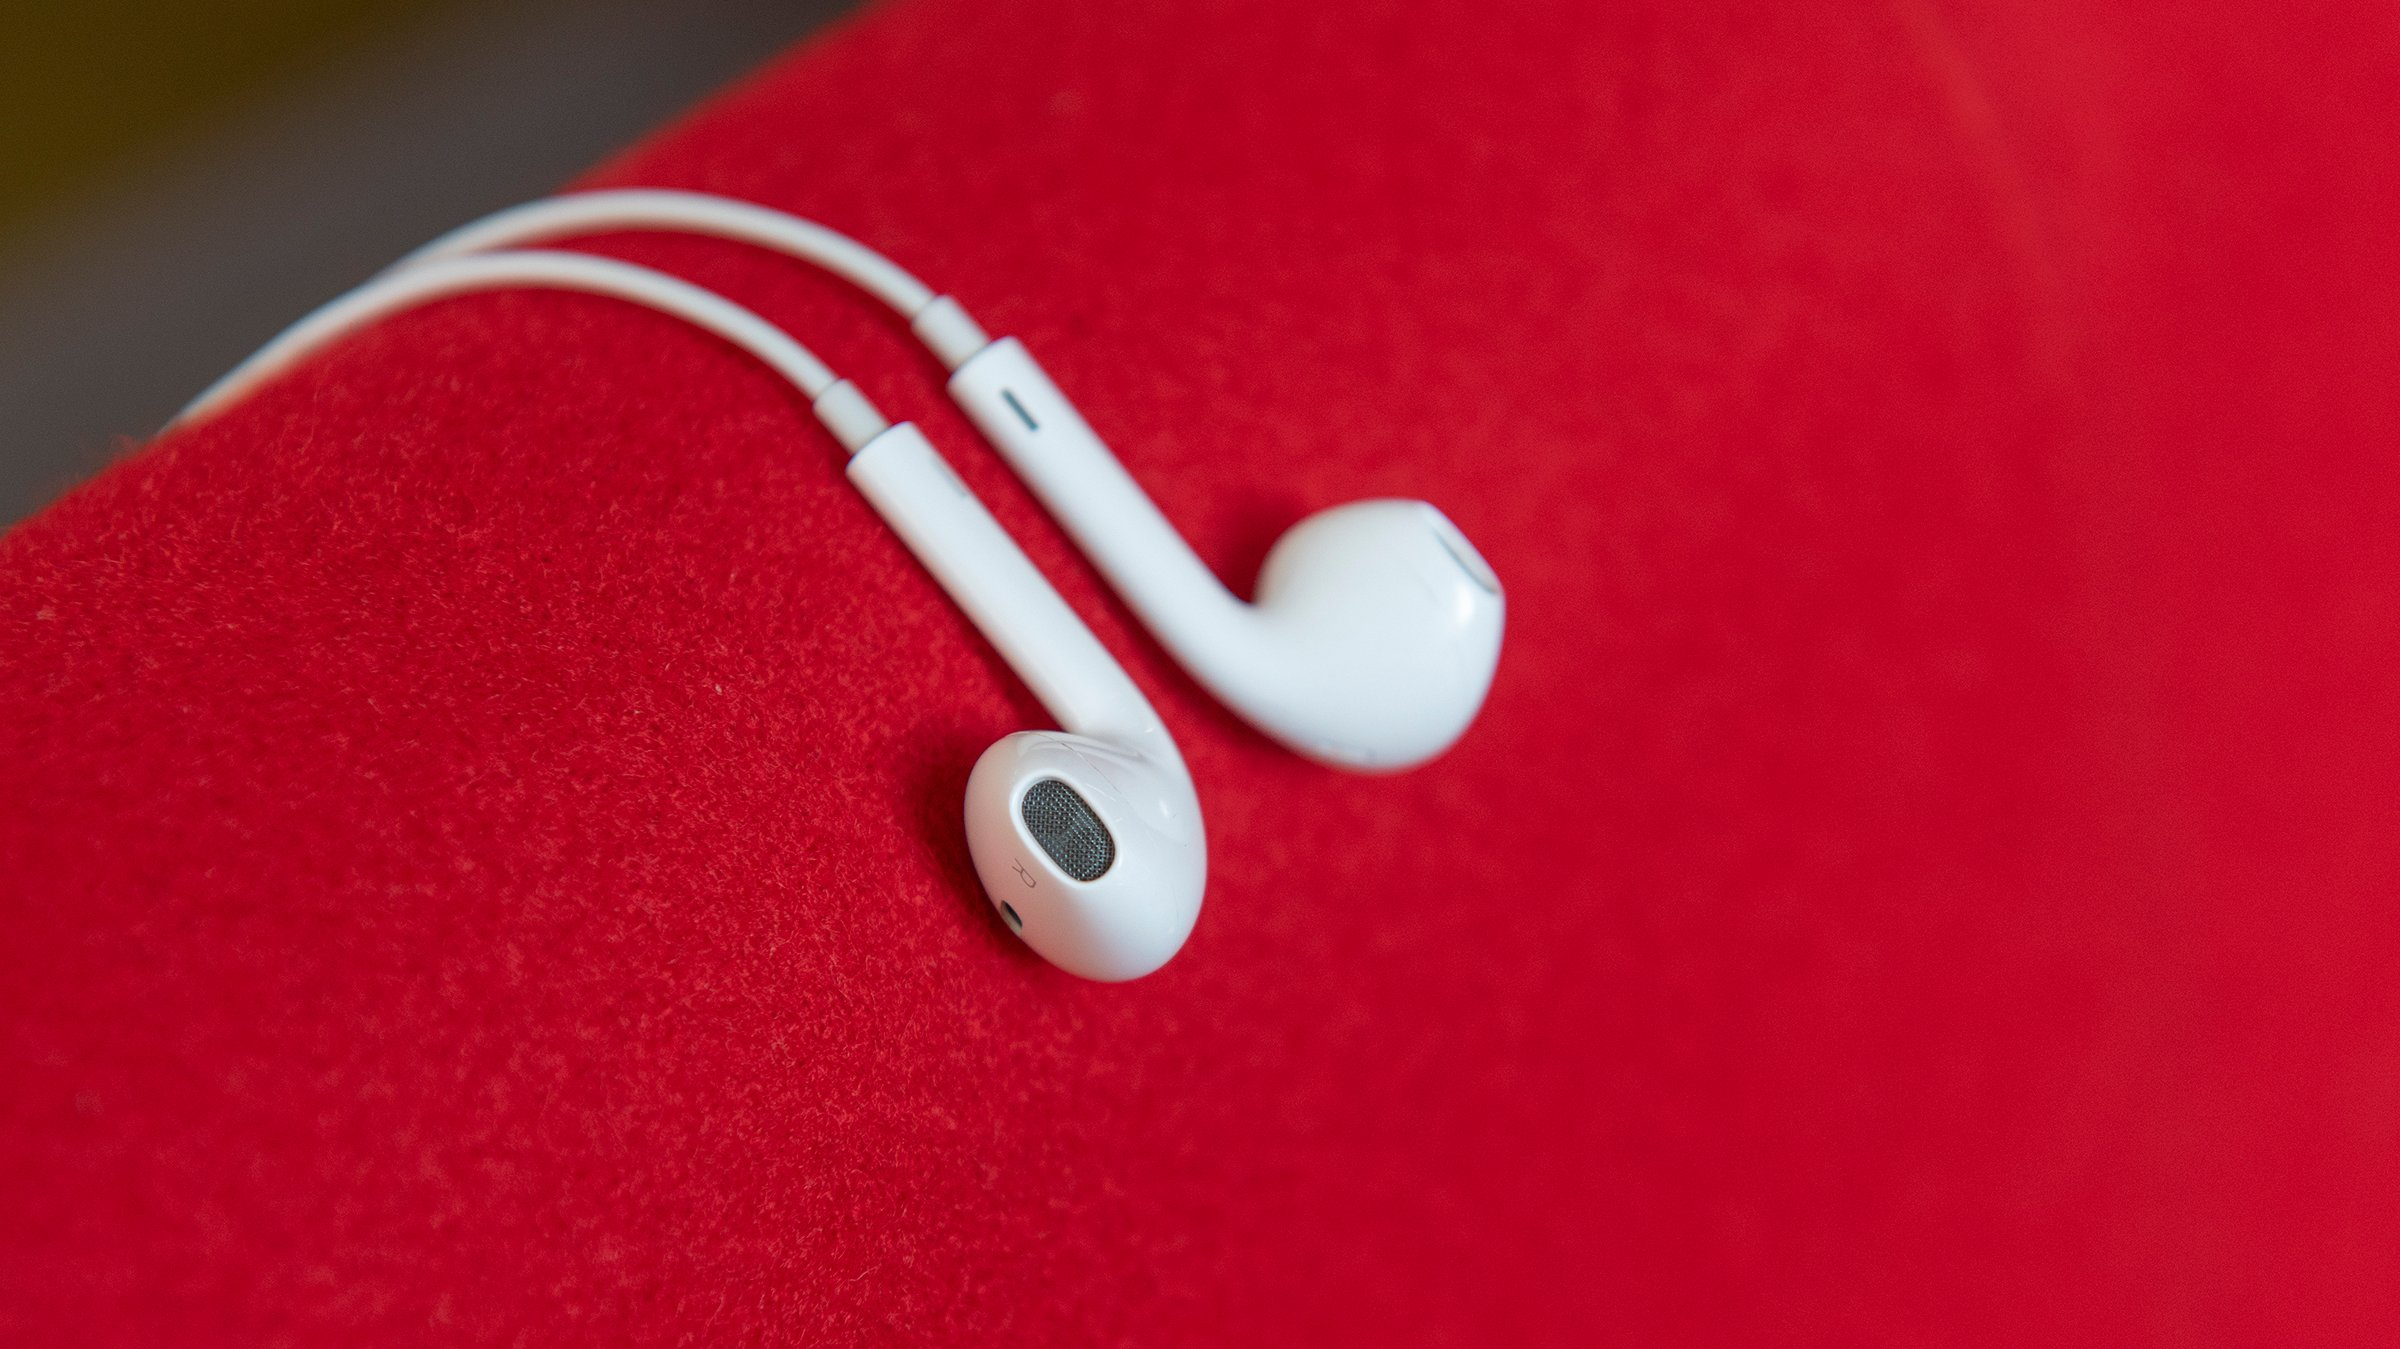 1b036ca0987 Apple EarPods review: They're free with all iPhones but are they any good?  | Expert Reviews